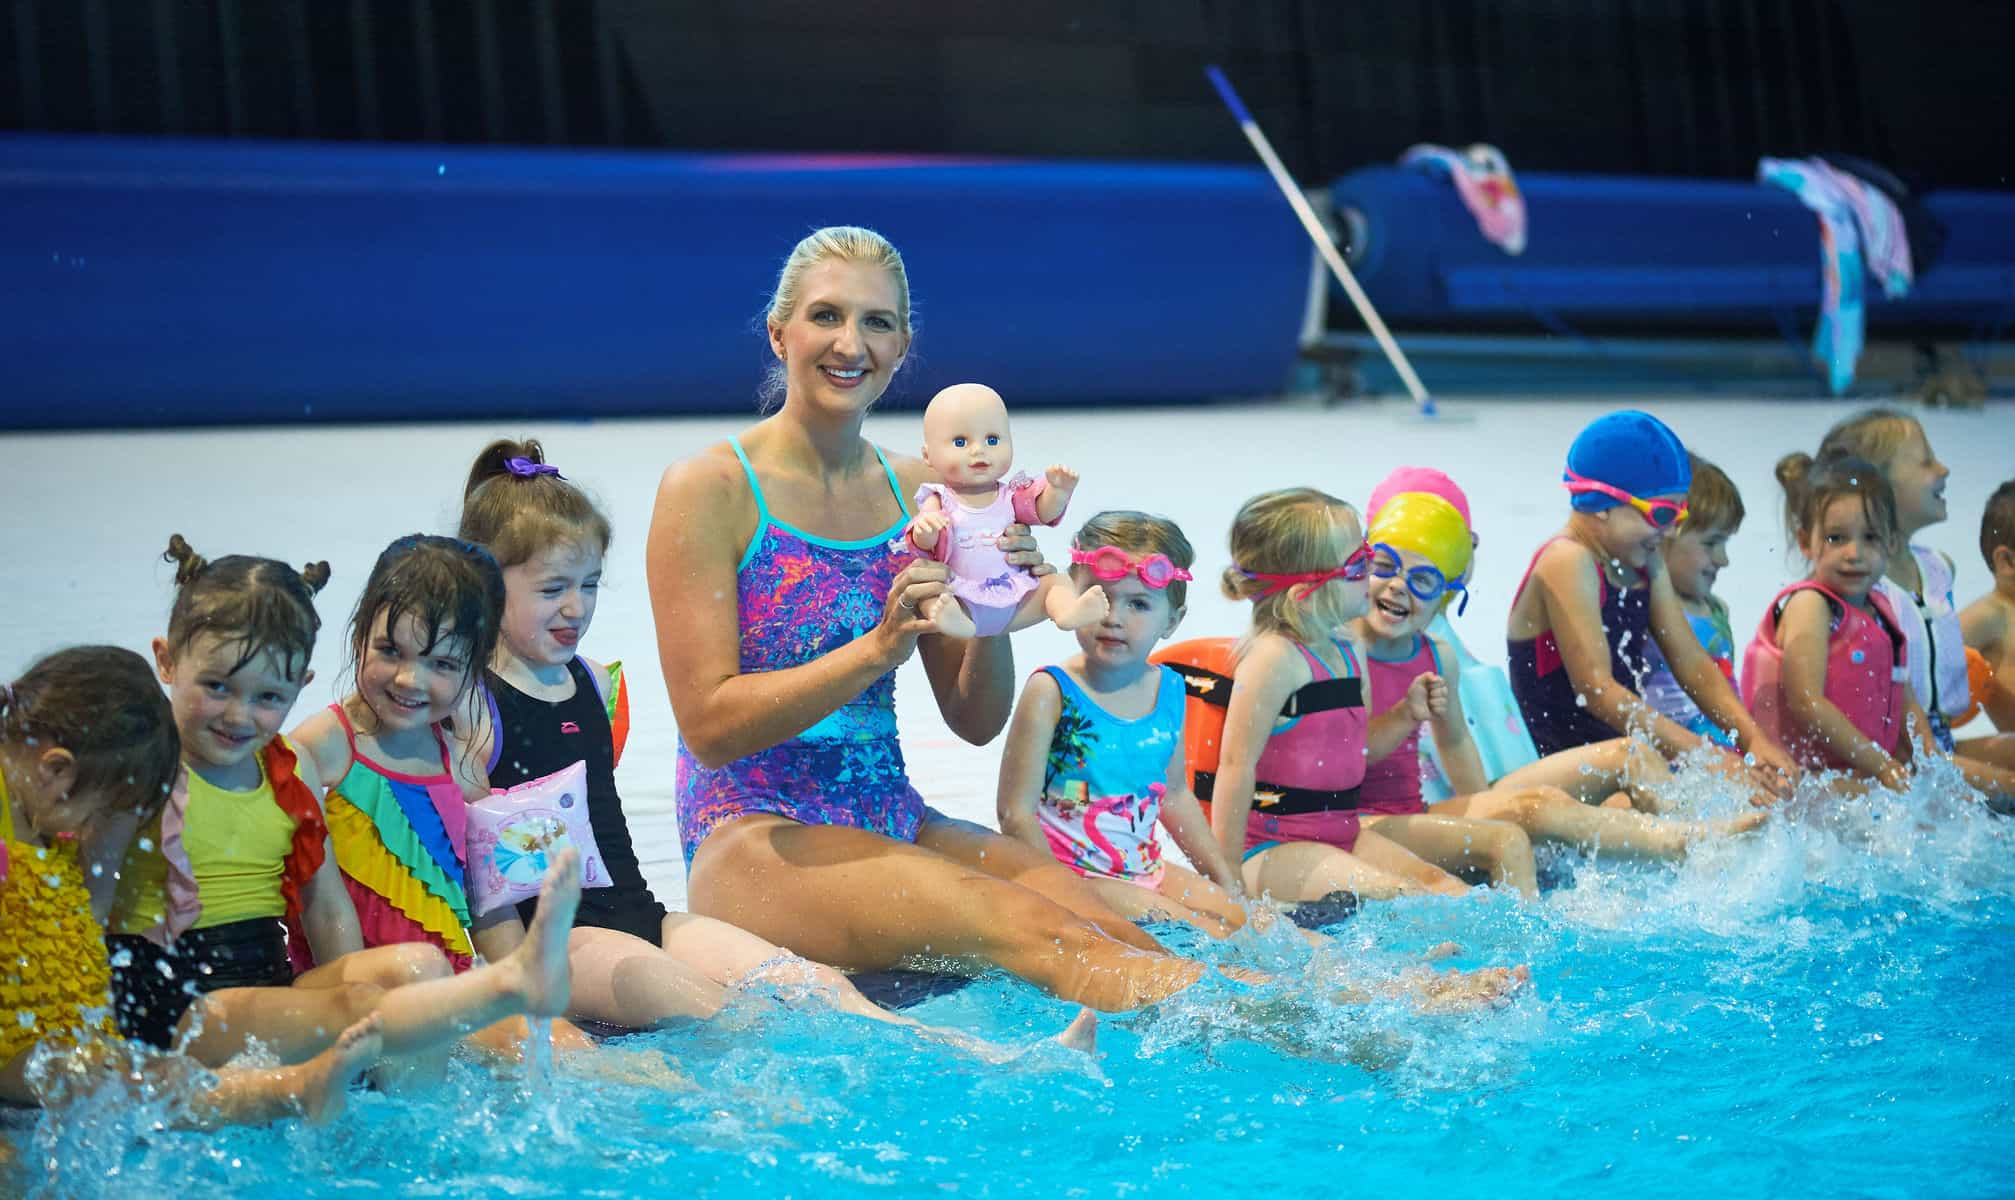 Learning To Swim With Rebecca Adlington And Baby Annabell